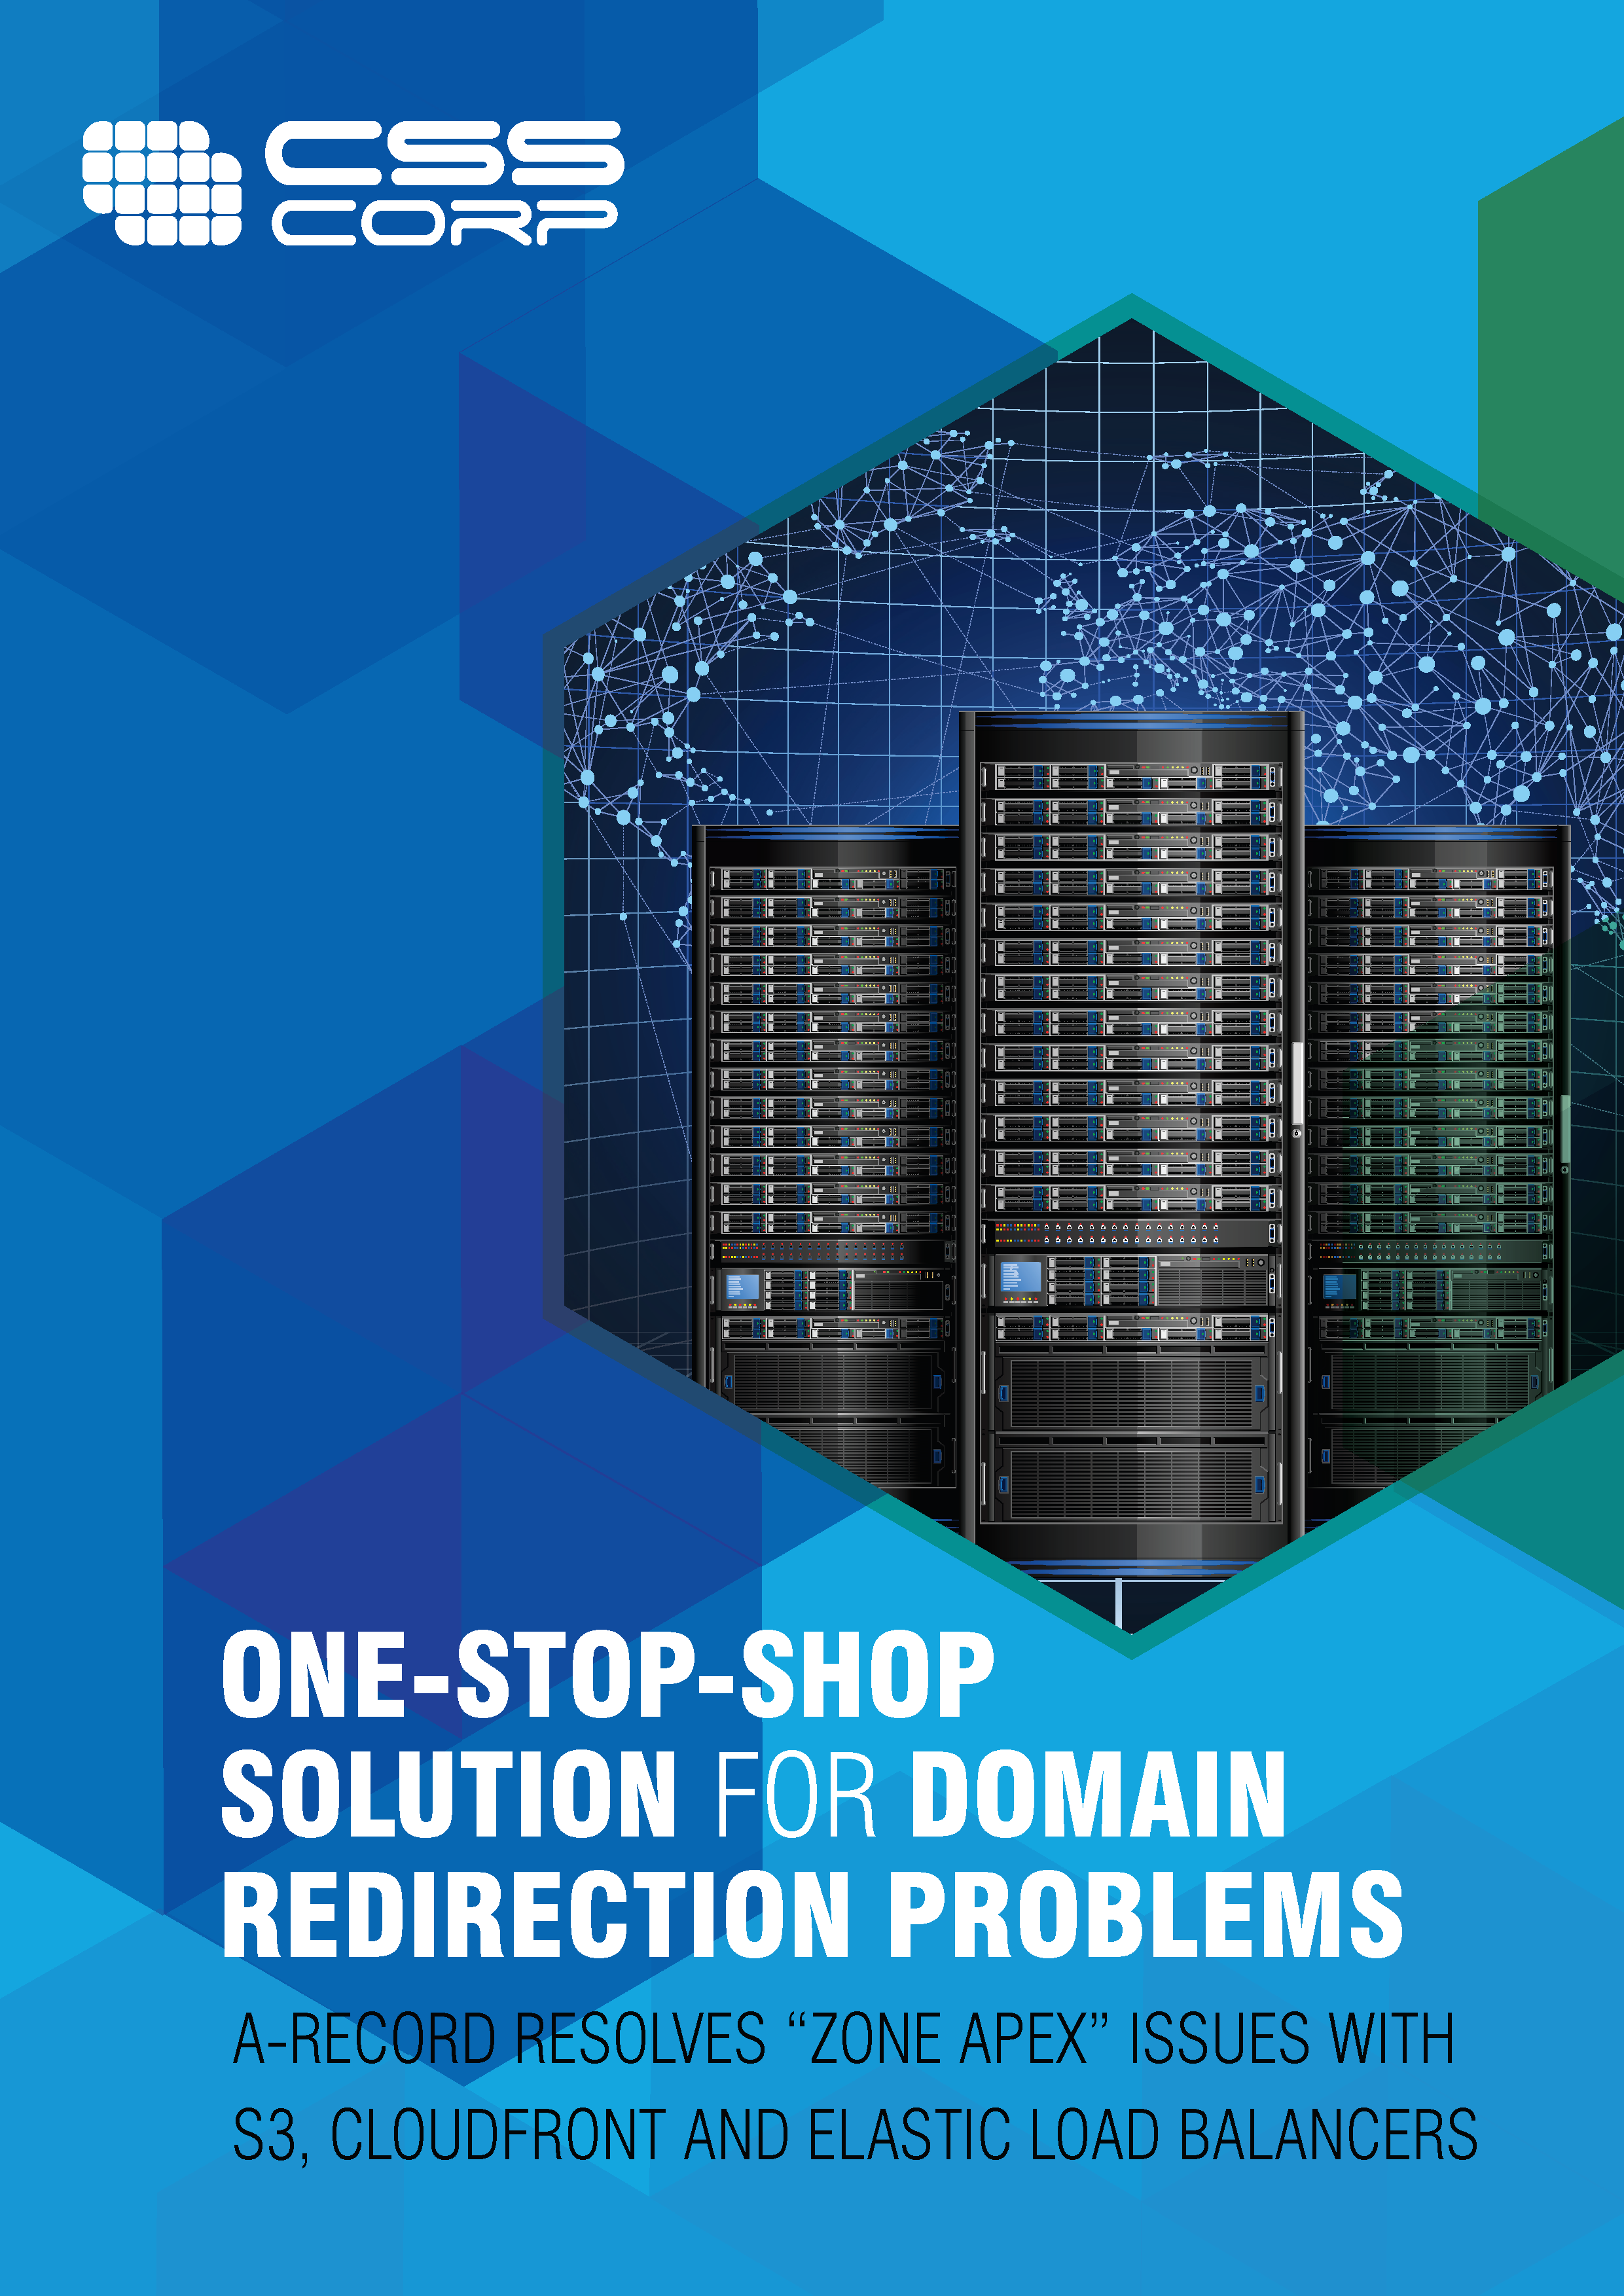 One-stop solution for domain redirection problems